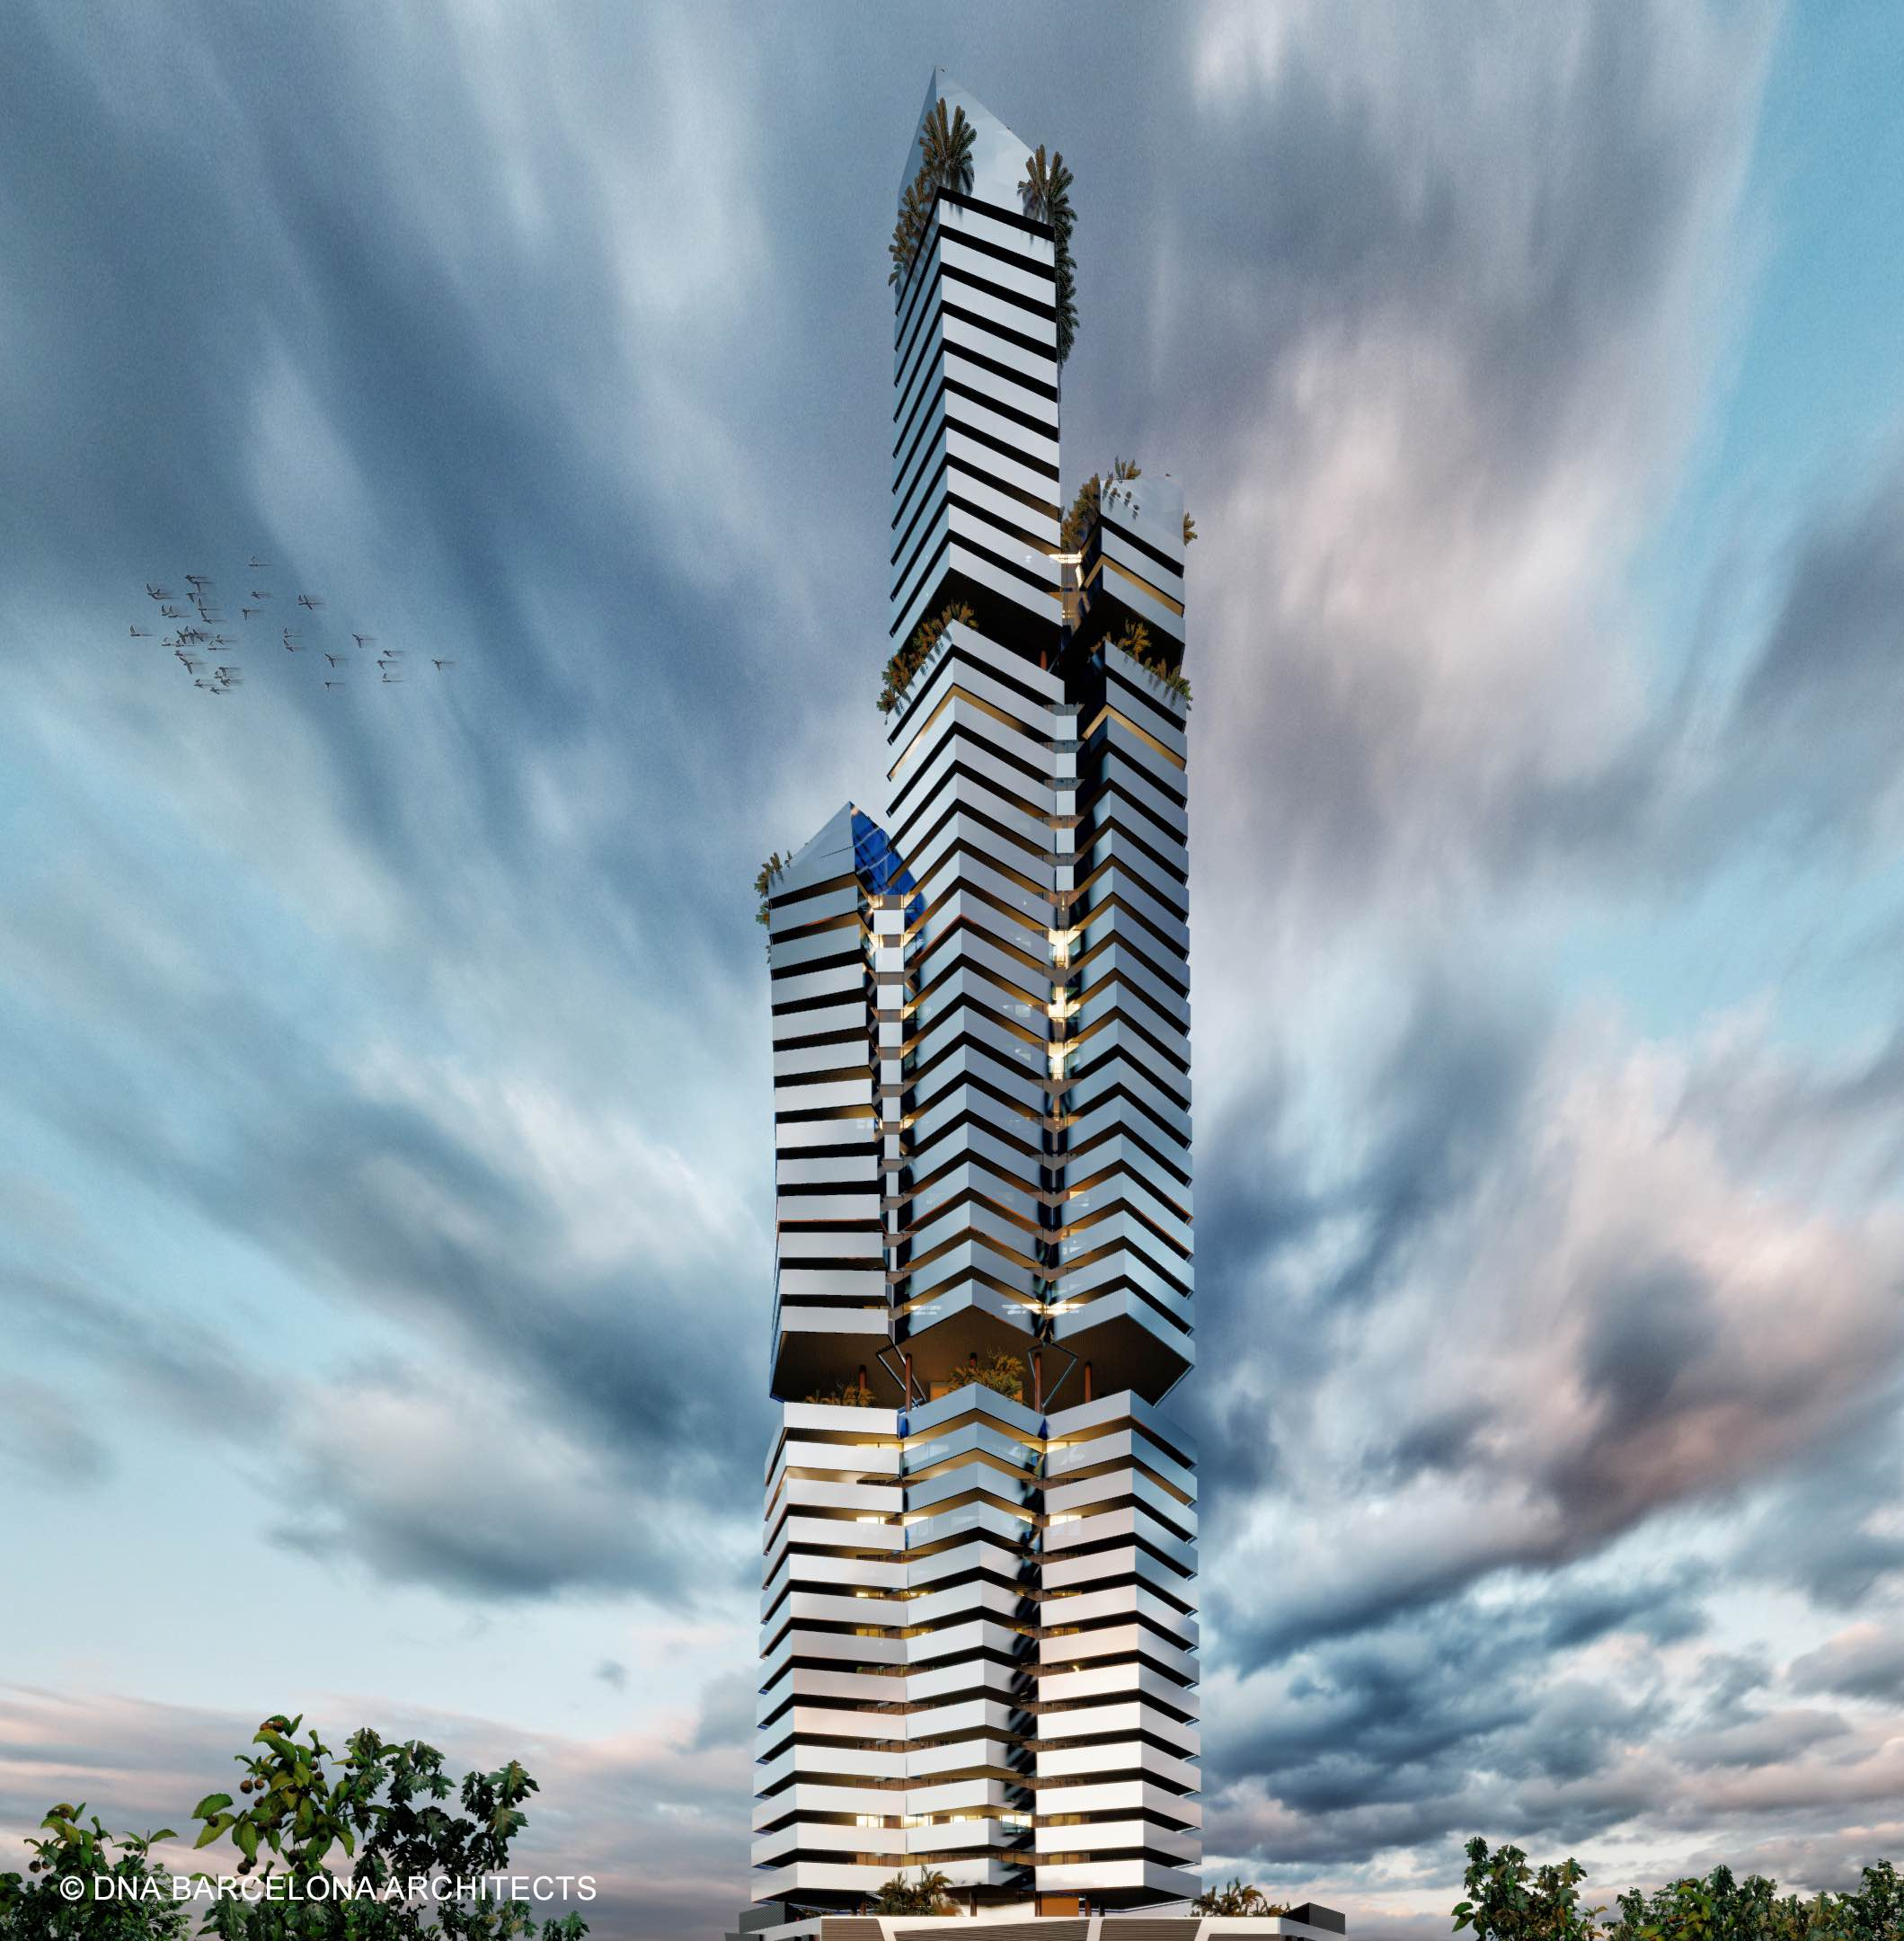 Kryptonite_Tower_SPAIN_by_dna_barcelona_architect_amazing_architecture_001.jpg